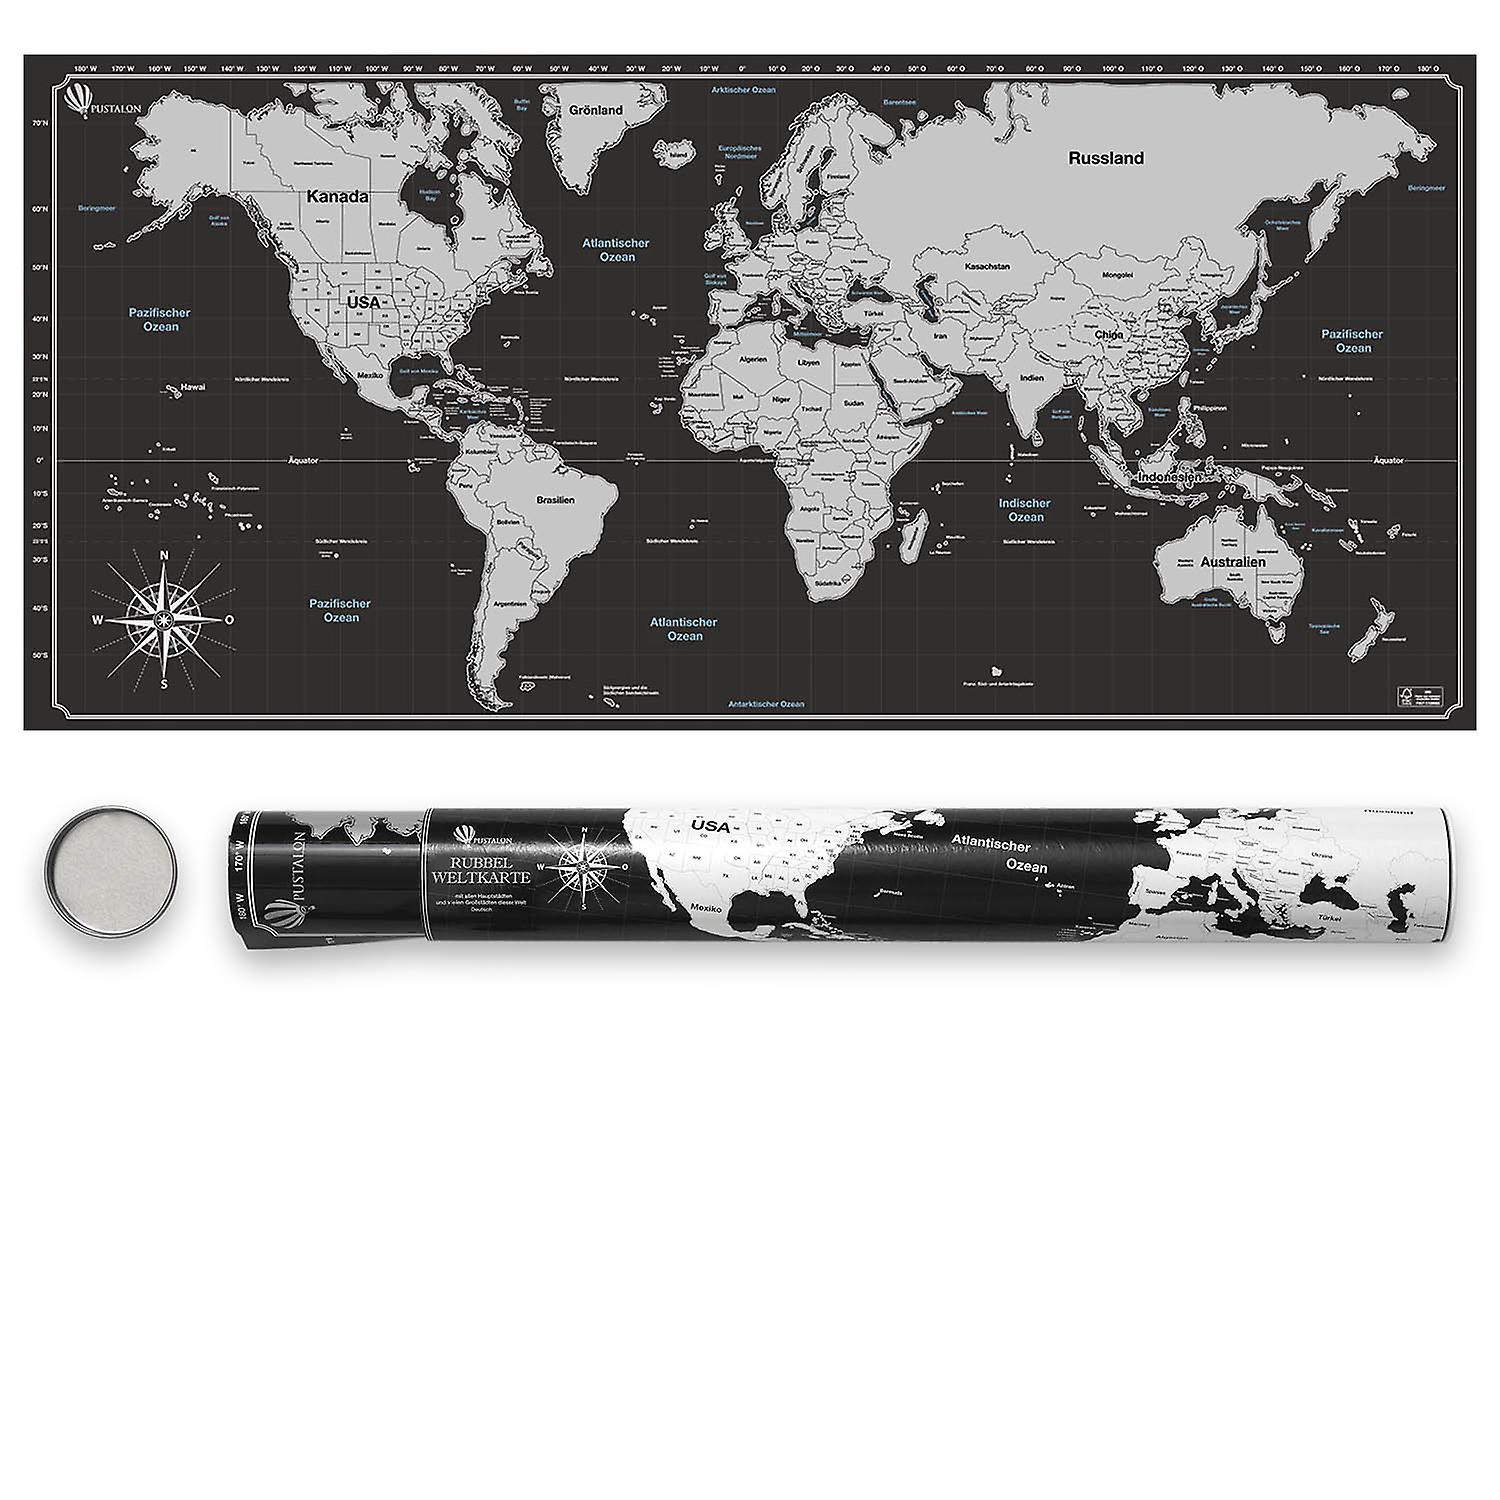 Pustalon World Map To Scratch English - FSC® Certified - Made in Germany - Stainless Steel Scratch Chip, Scratch World Map Poster - Wall Poster Design Edition, Beautiful Gift Packaging